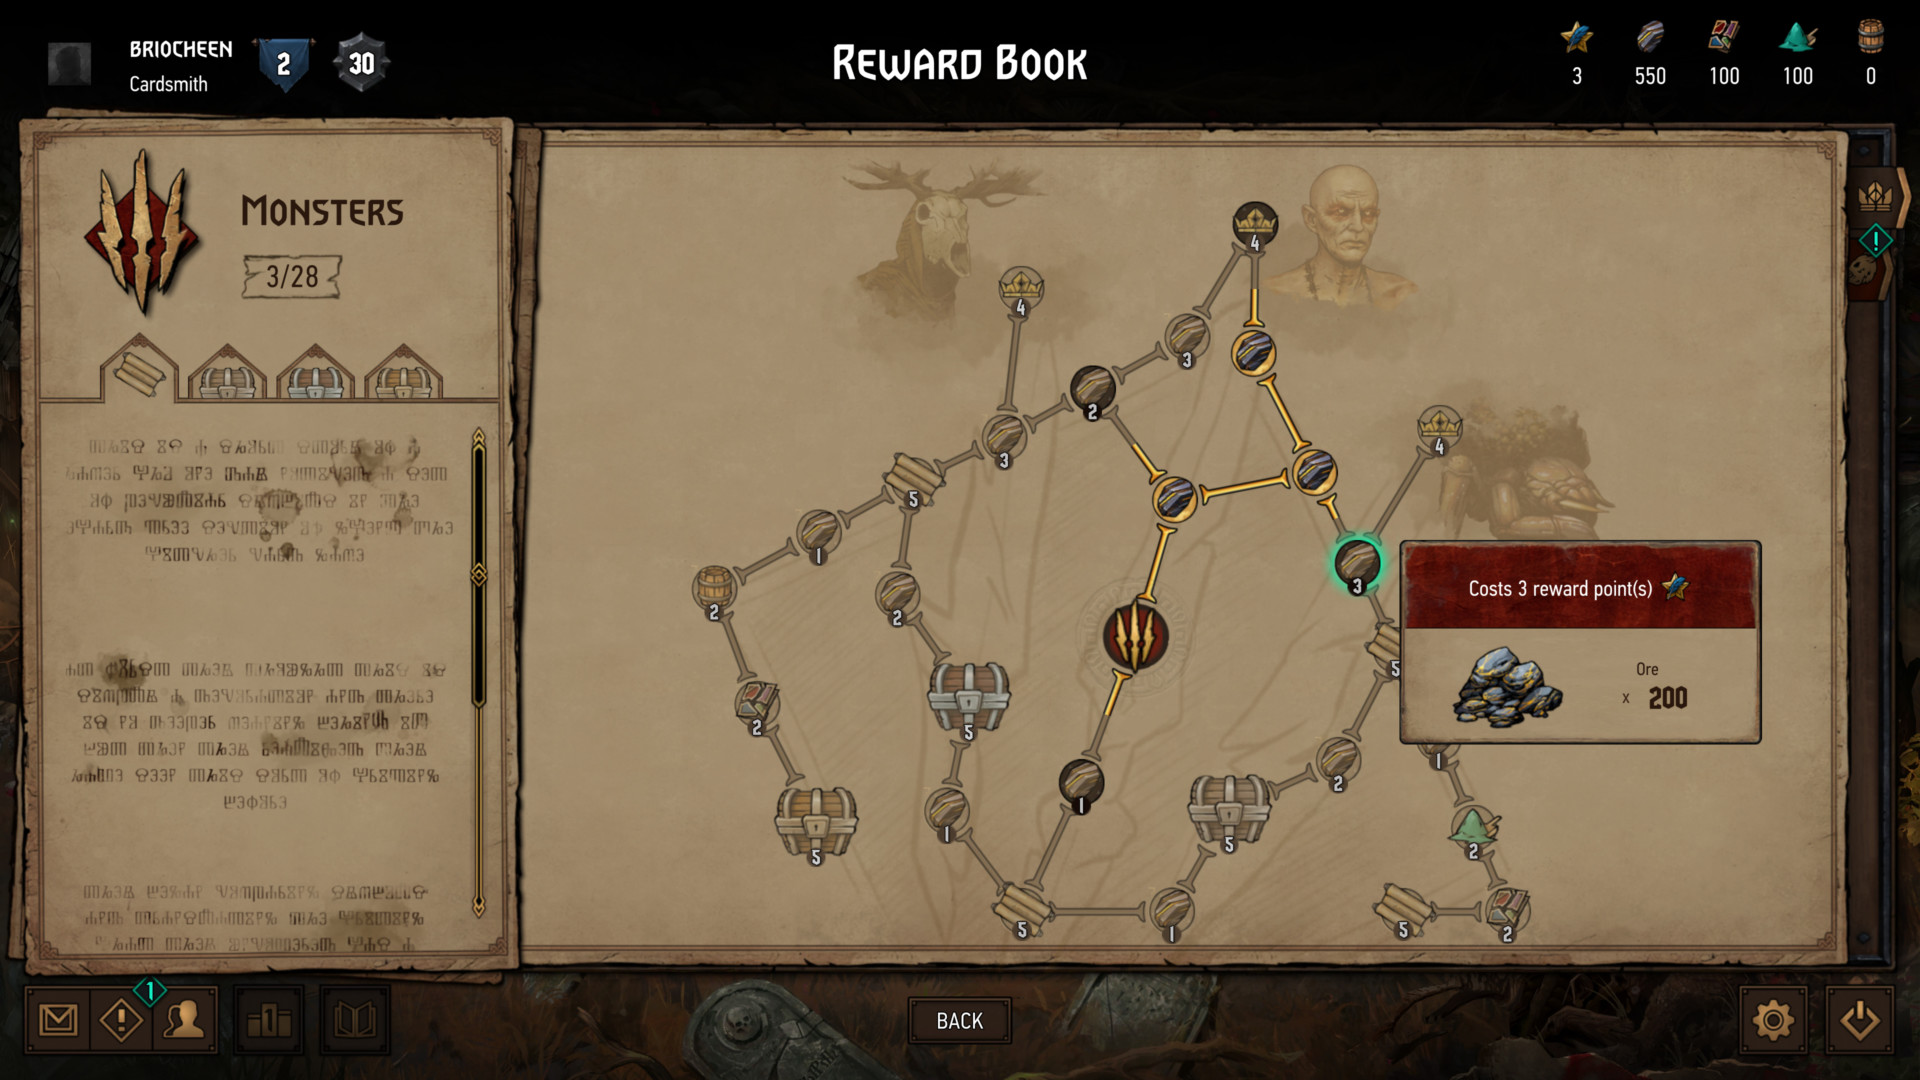 Monsters reward screenshot of Gwent: The Witcher Card Game video game interface.